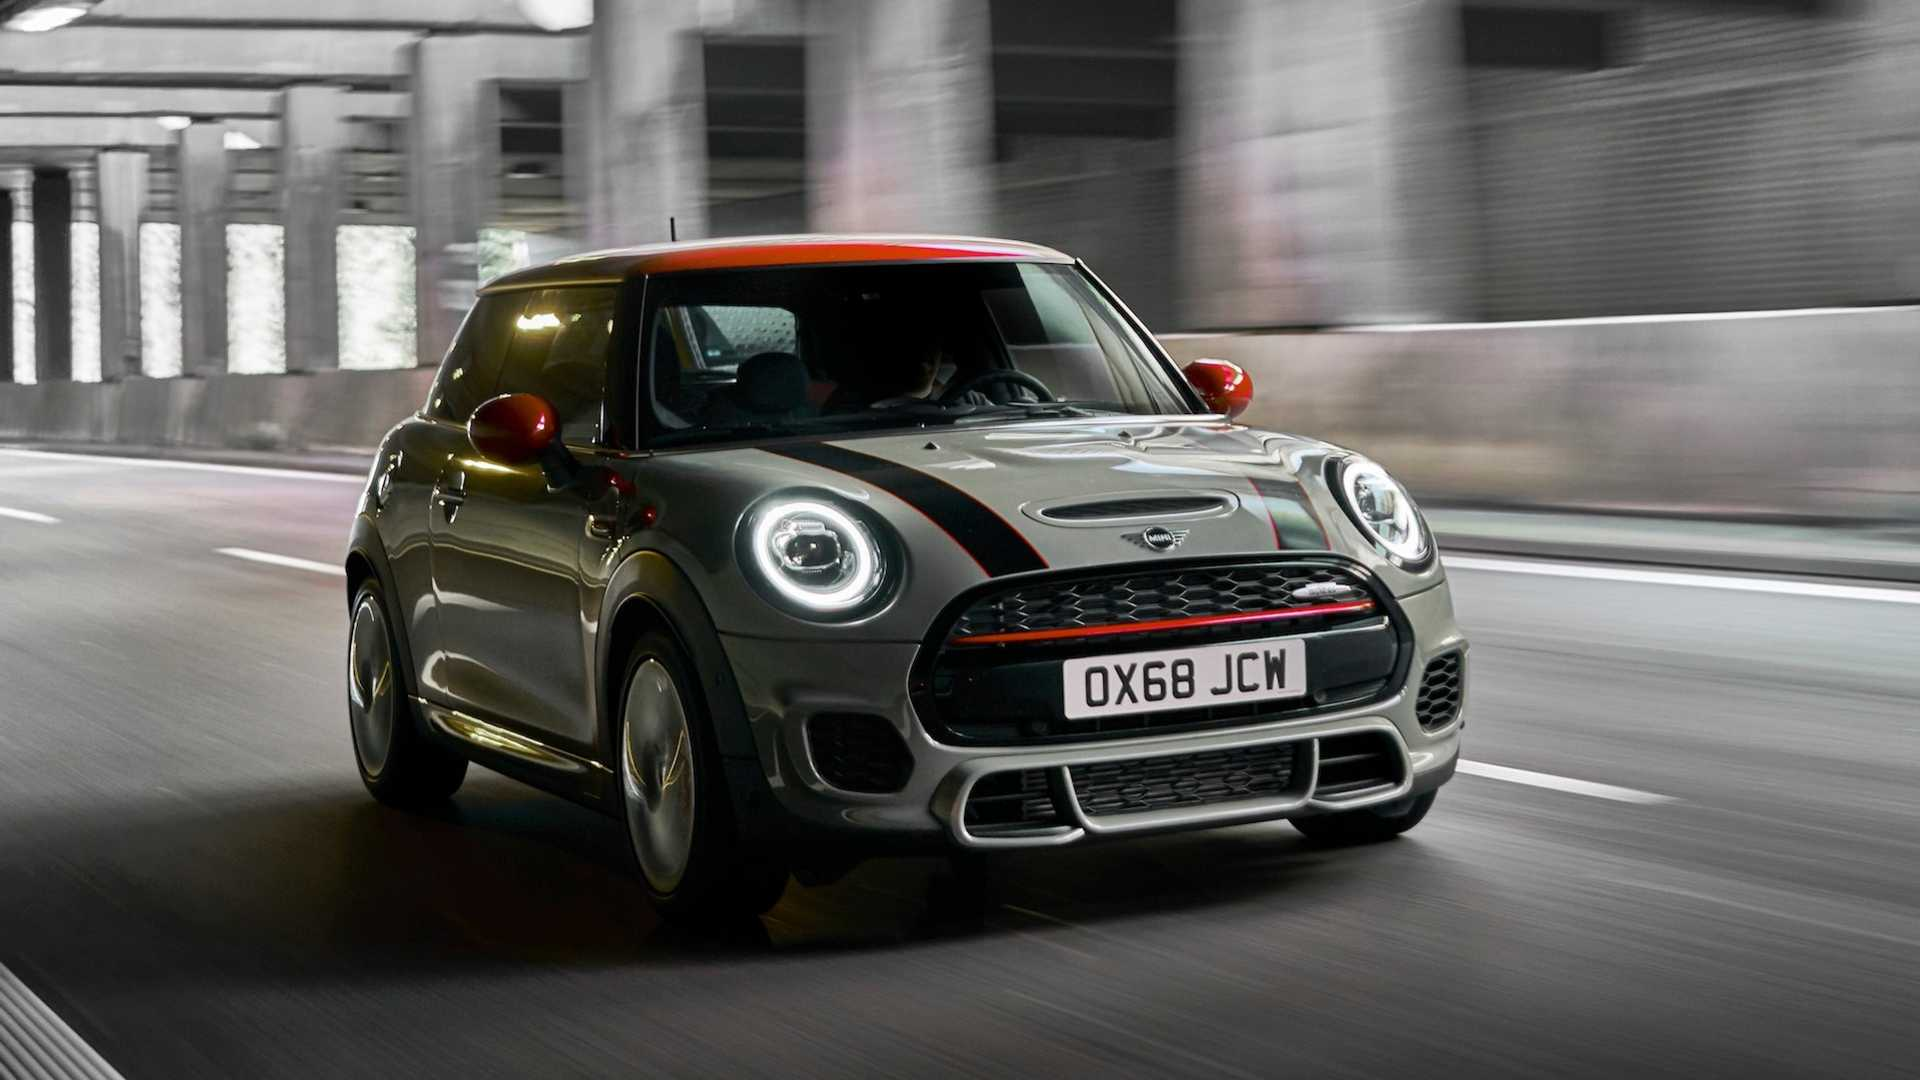 57 The Best 2019 Mini Jcw Specs Release Date